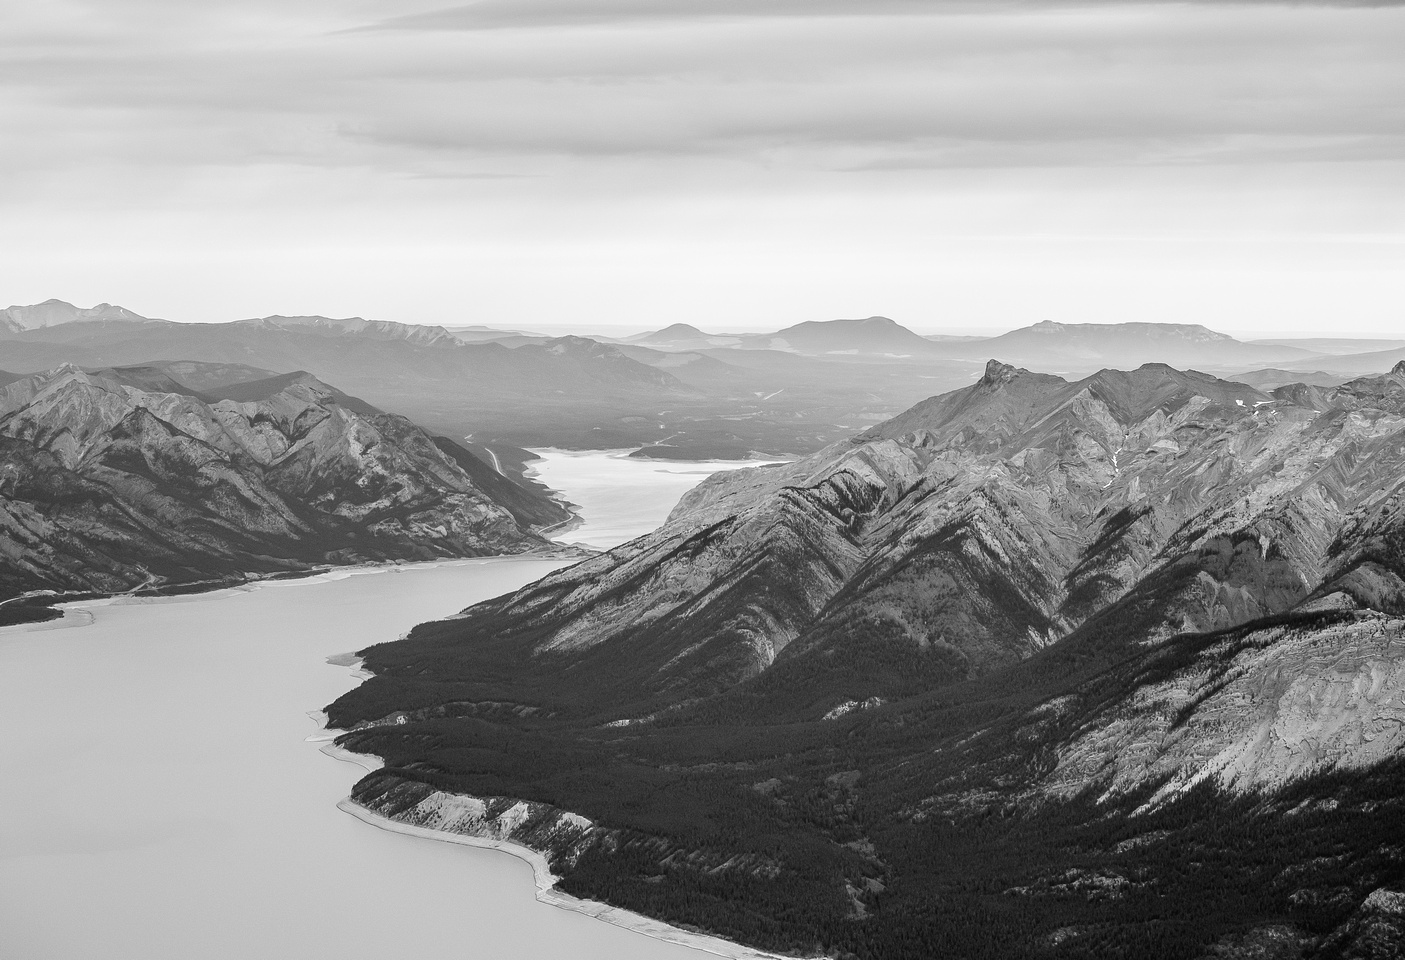 Looking over Mount Michener towards the end of Abraham Lake and the foothills beyond to the Bighorn Range.